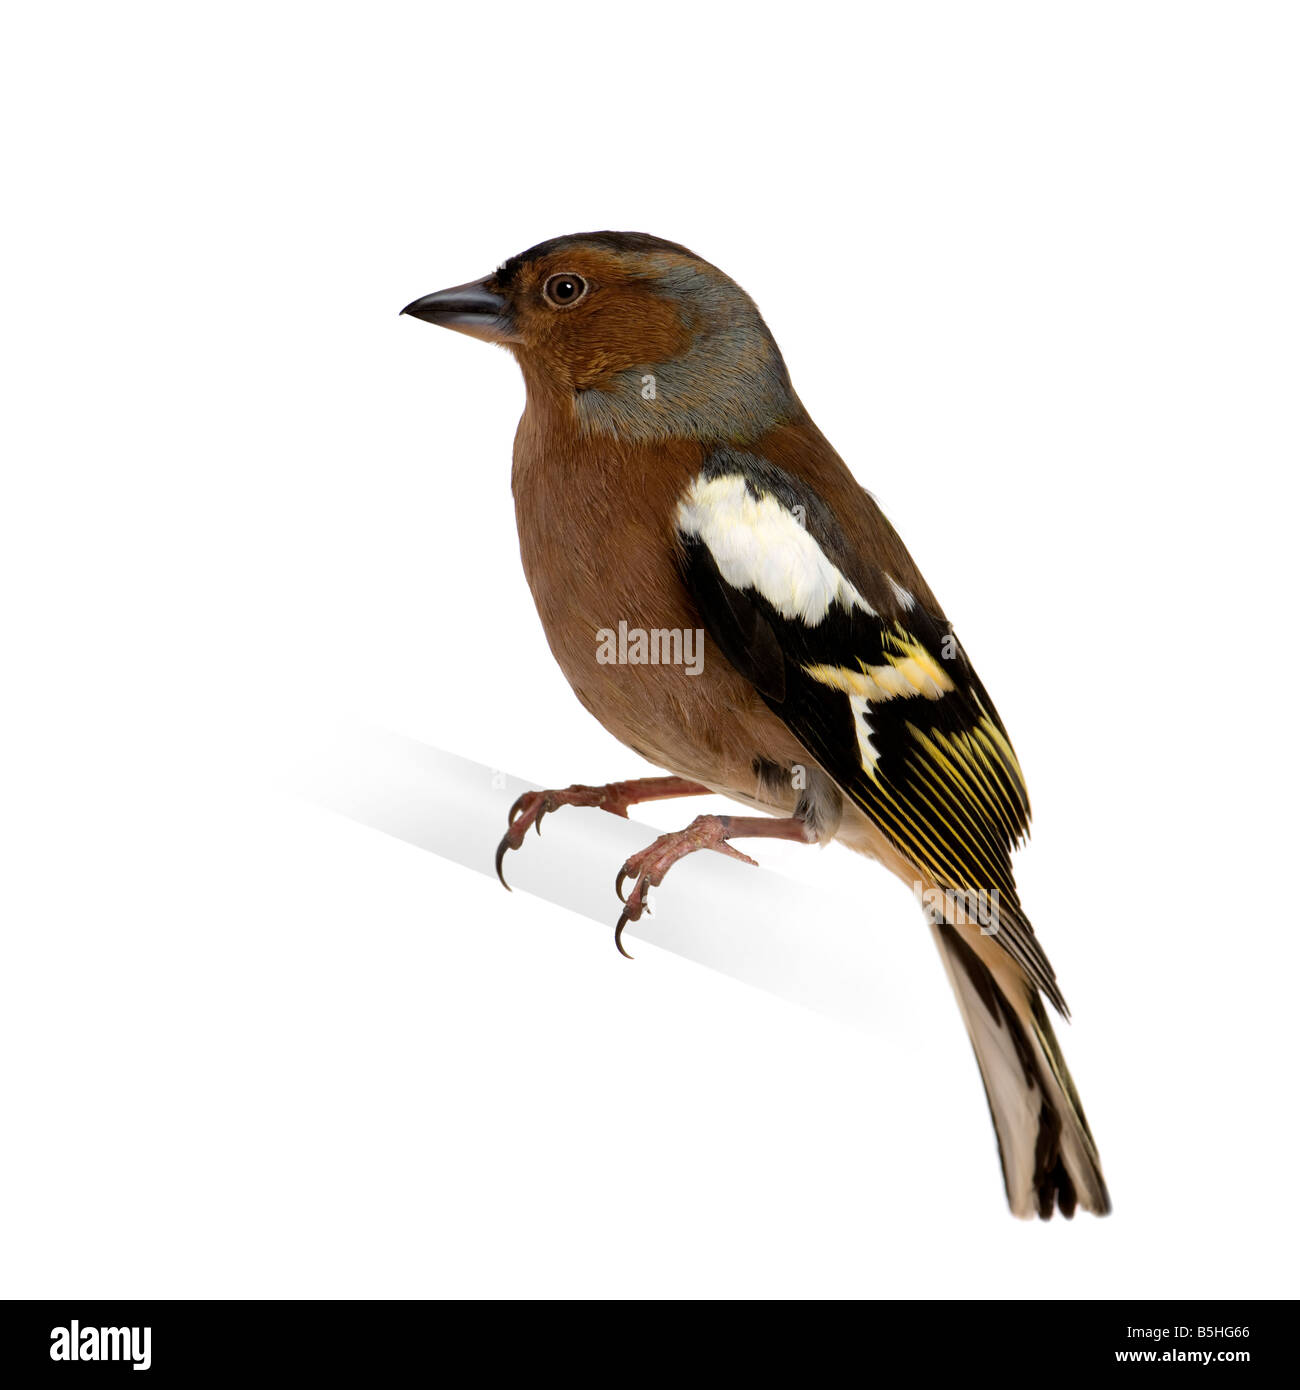 Chaffinch Fringilla coelebs on its perch in front of a white background - Stock Image